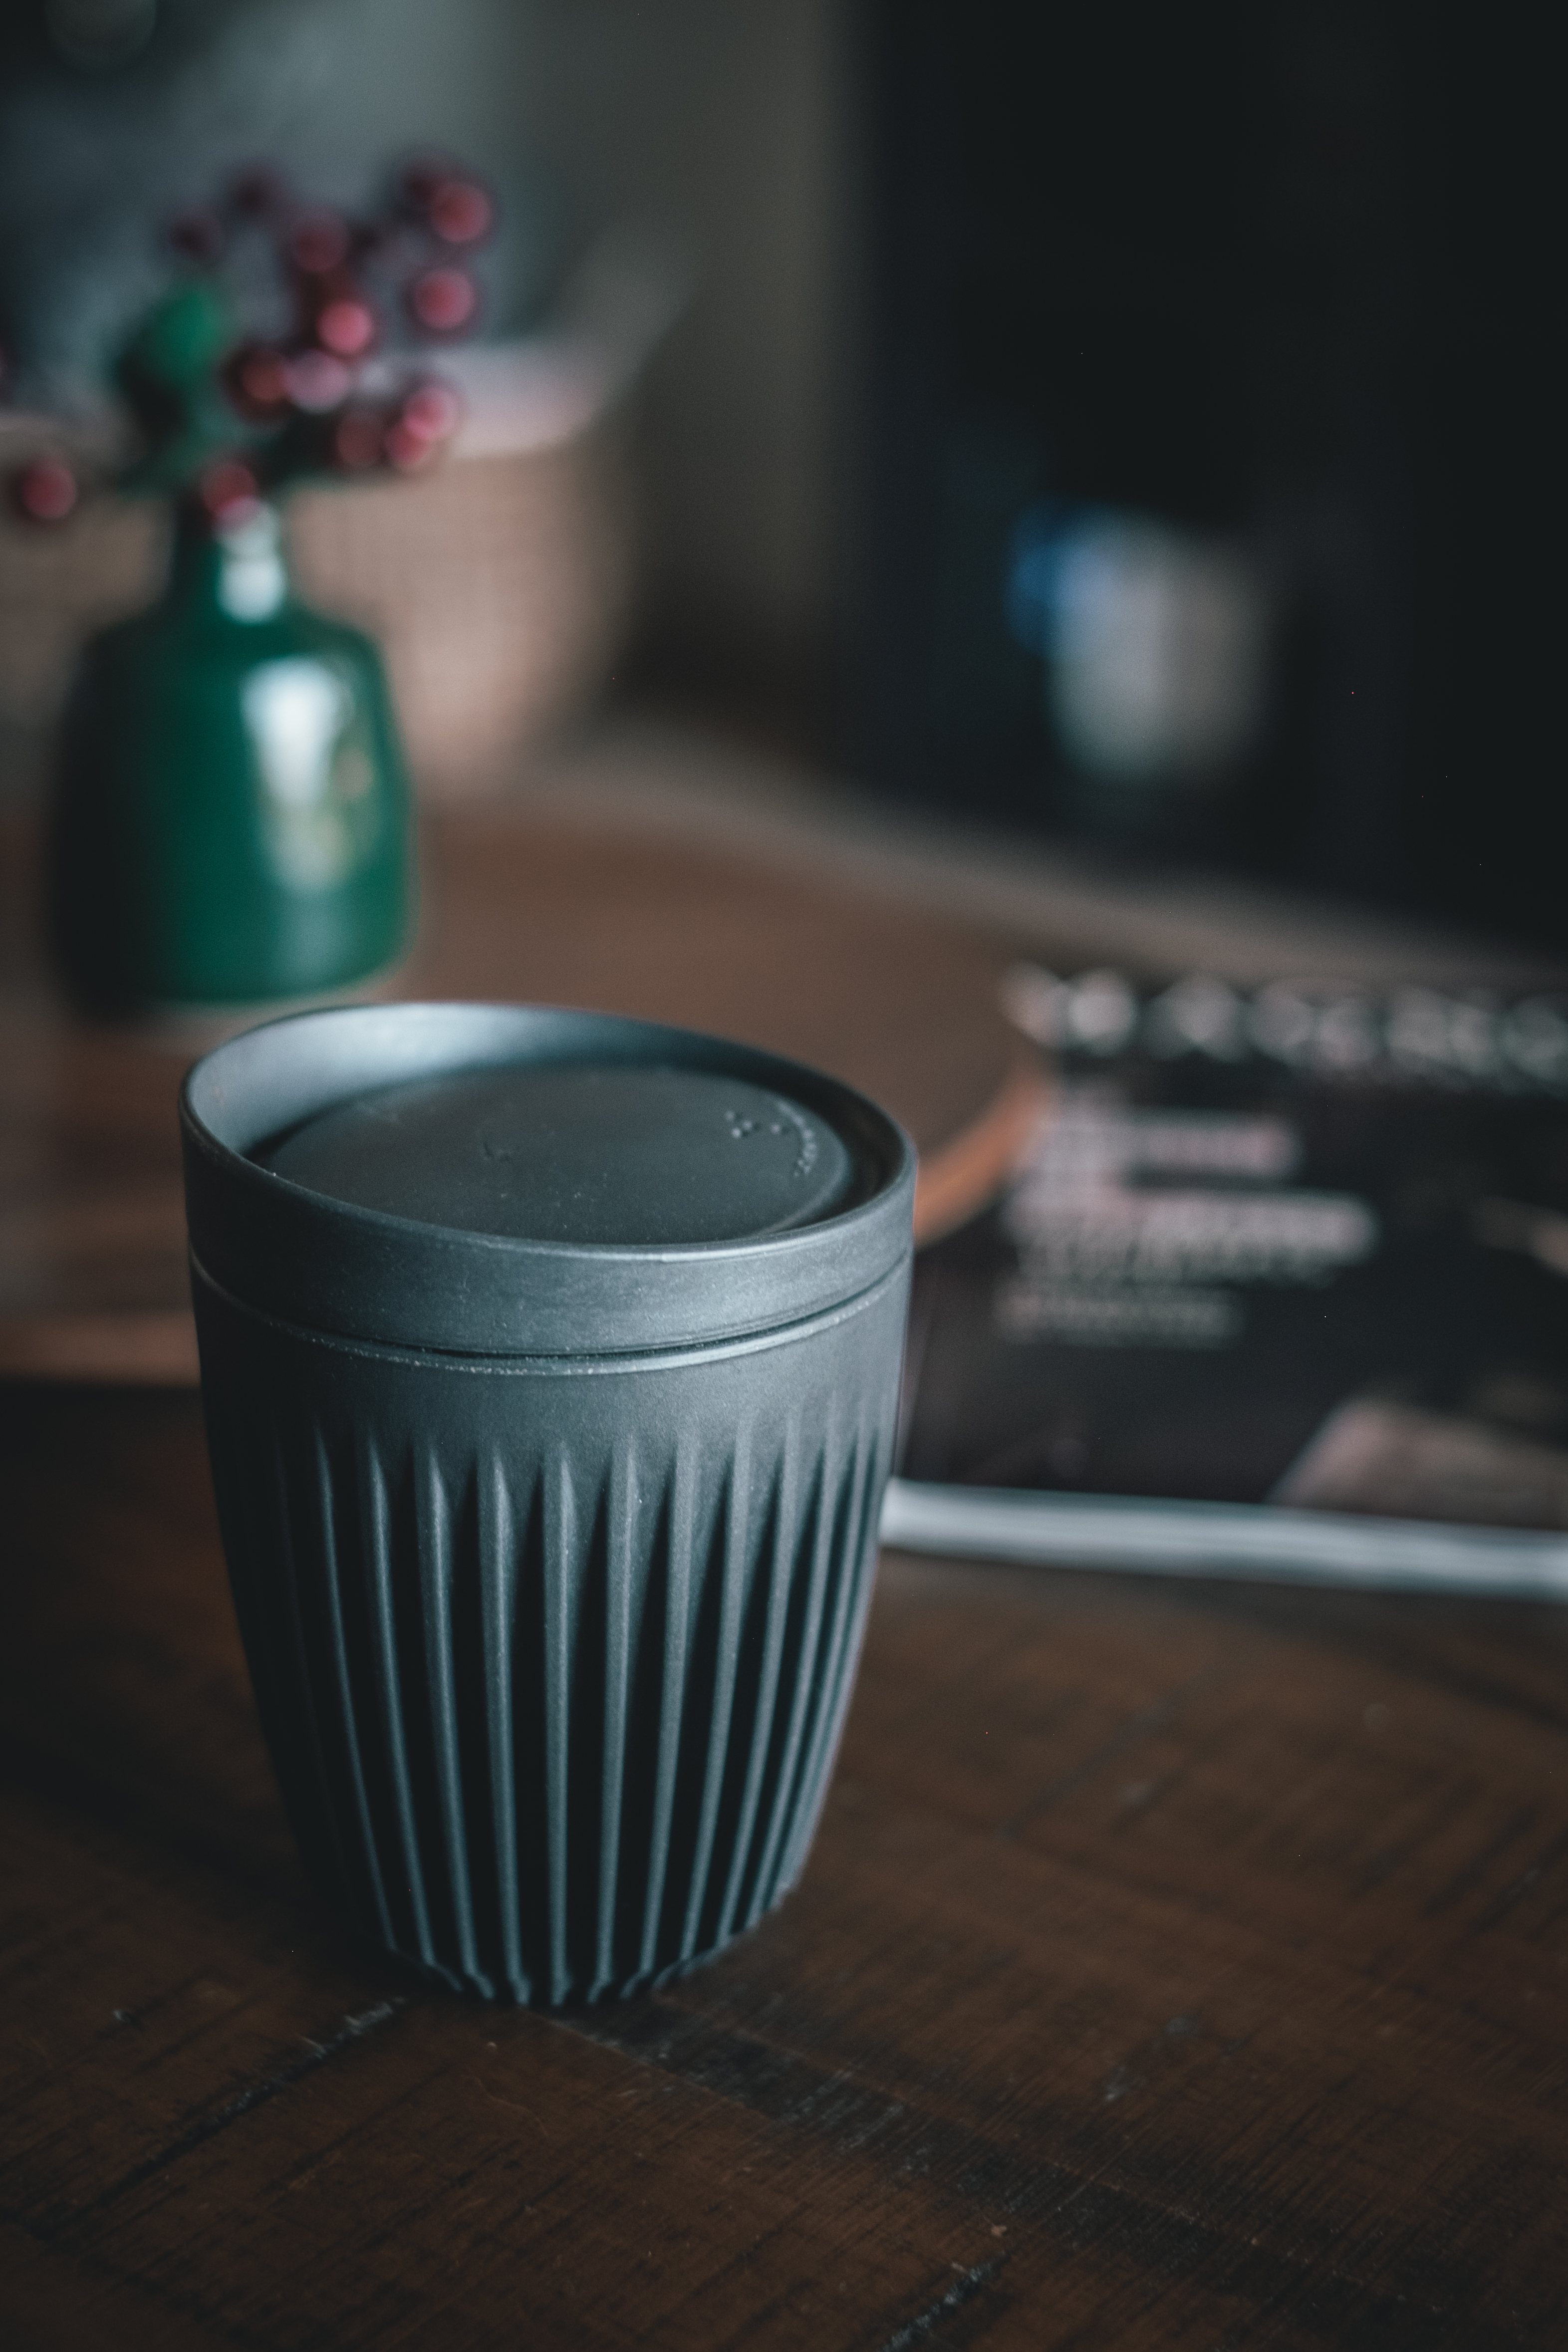 Huskee Cup, my favorite new coffee cup. This takeaway cup is made from organic coffee husks and is a great replacement for those single use takeaway cups.